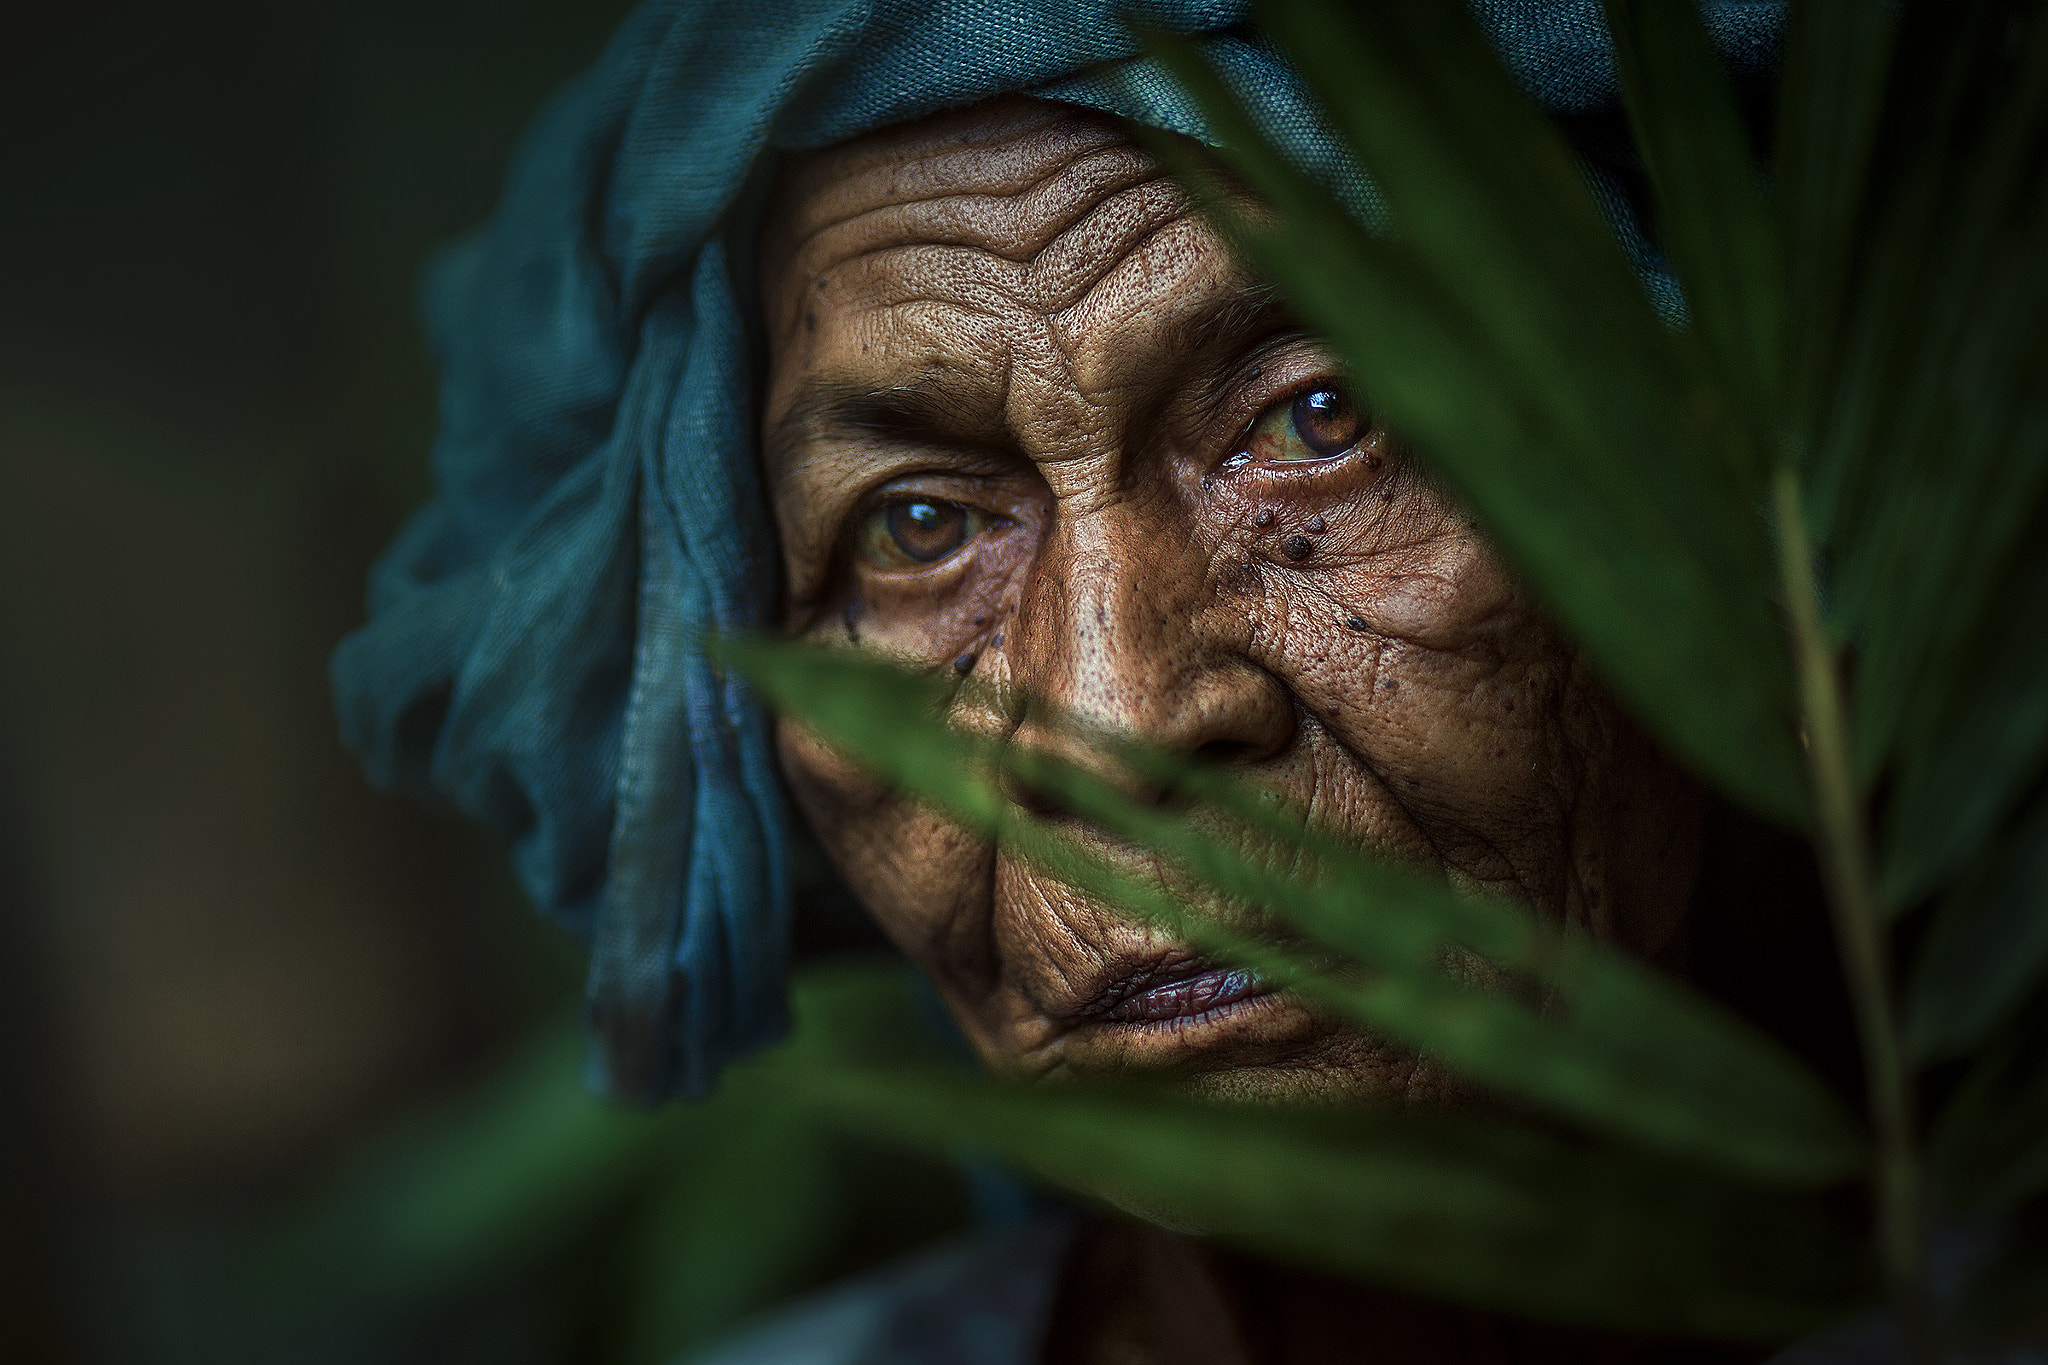 Photograph MAMA ESAH BEHIND THE BAMBOO FOREST by abe less on 500px